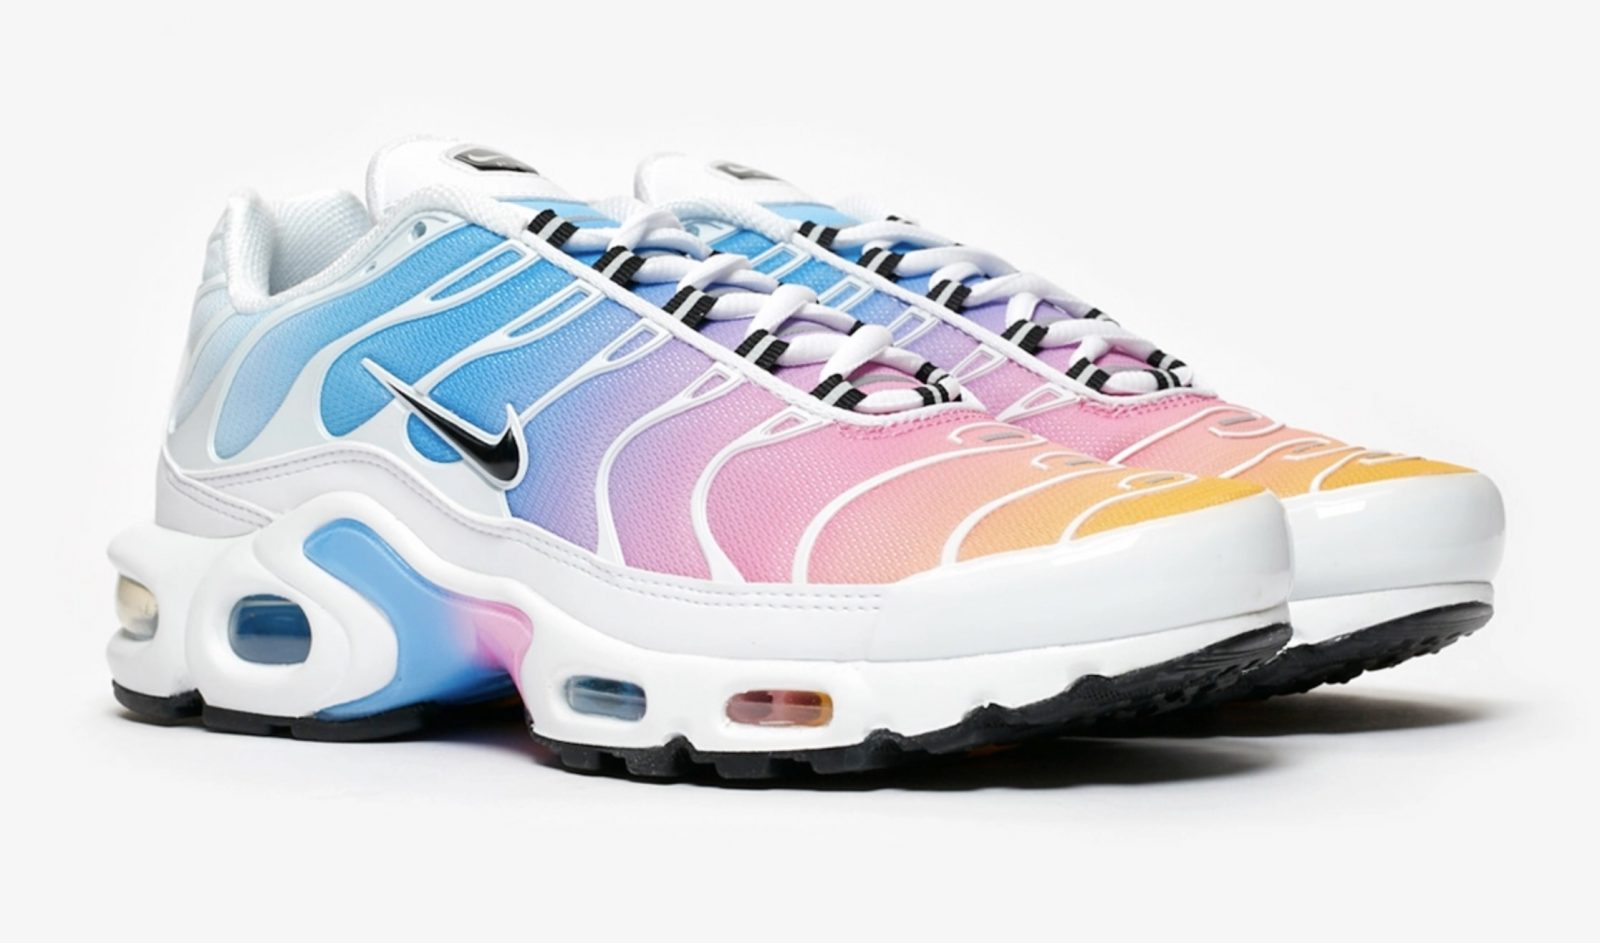 separation shoes b4e51 a9670 Nike Air Max Plus Blue Pink | 605112-115